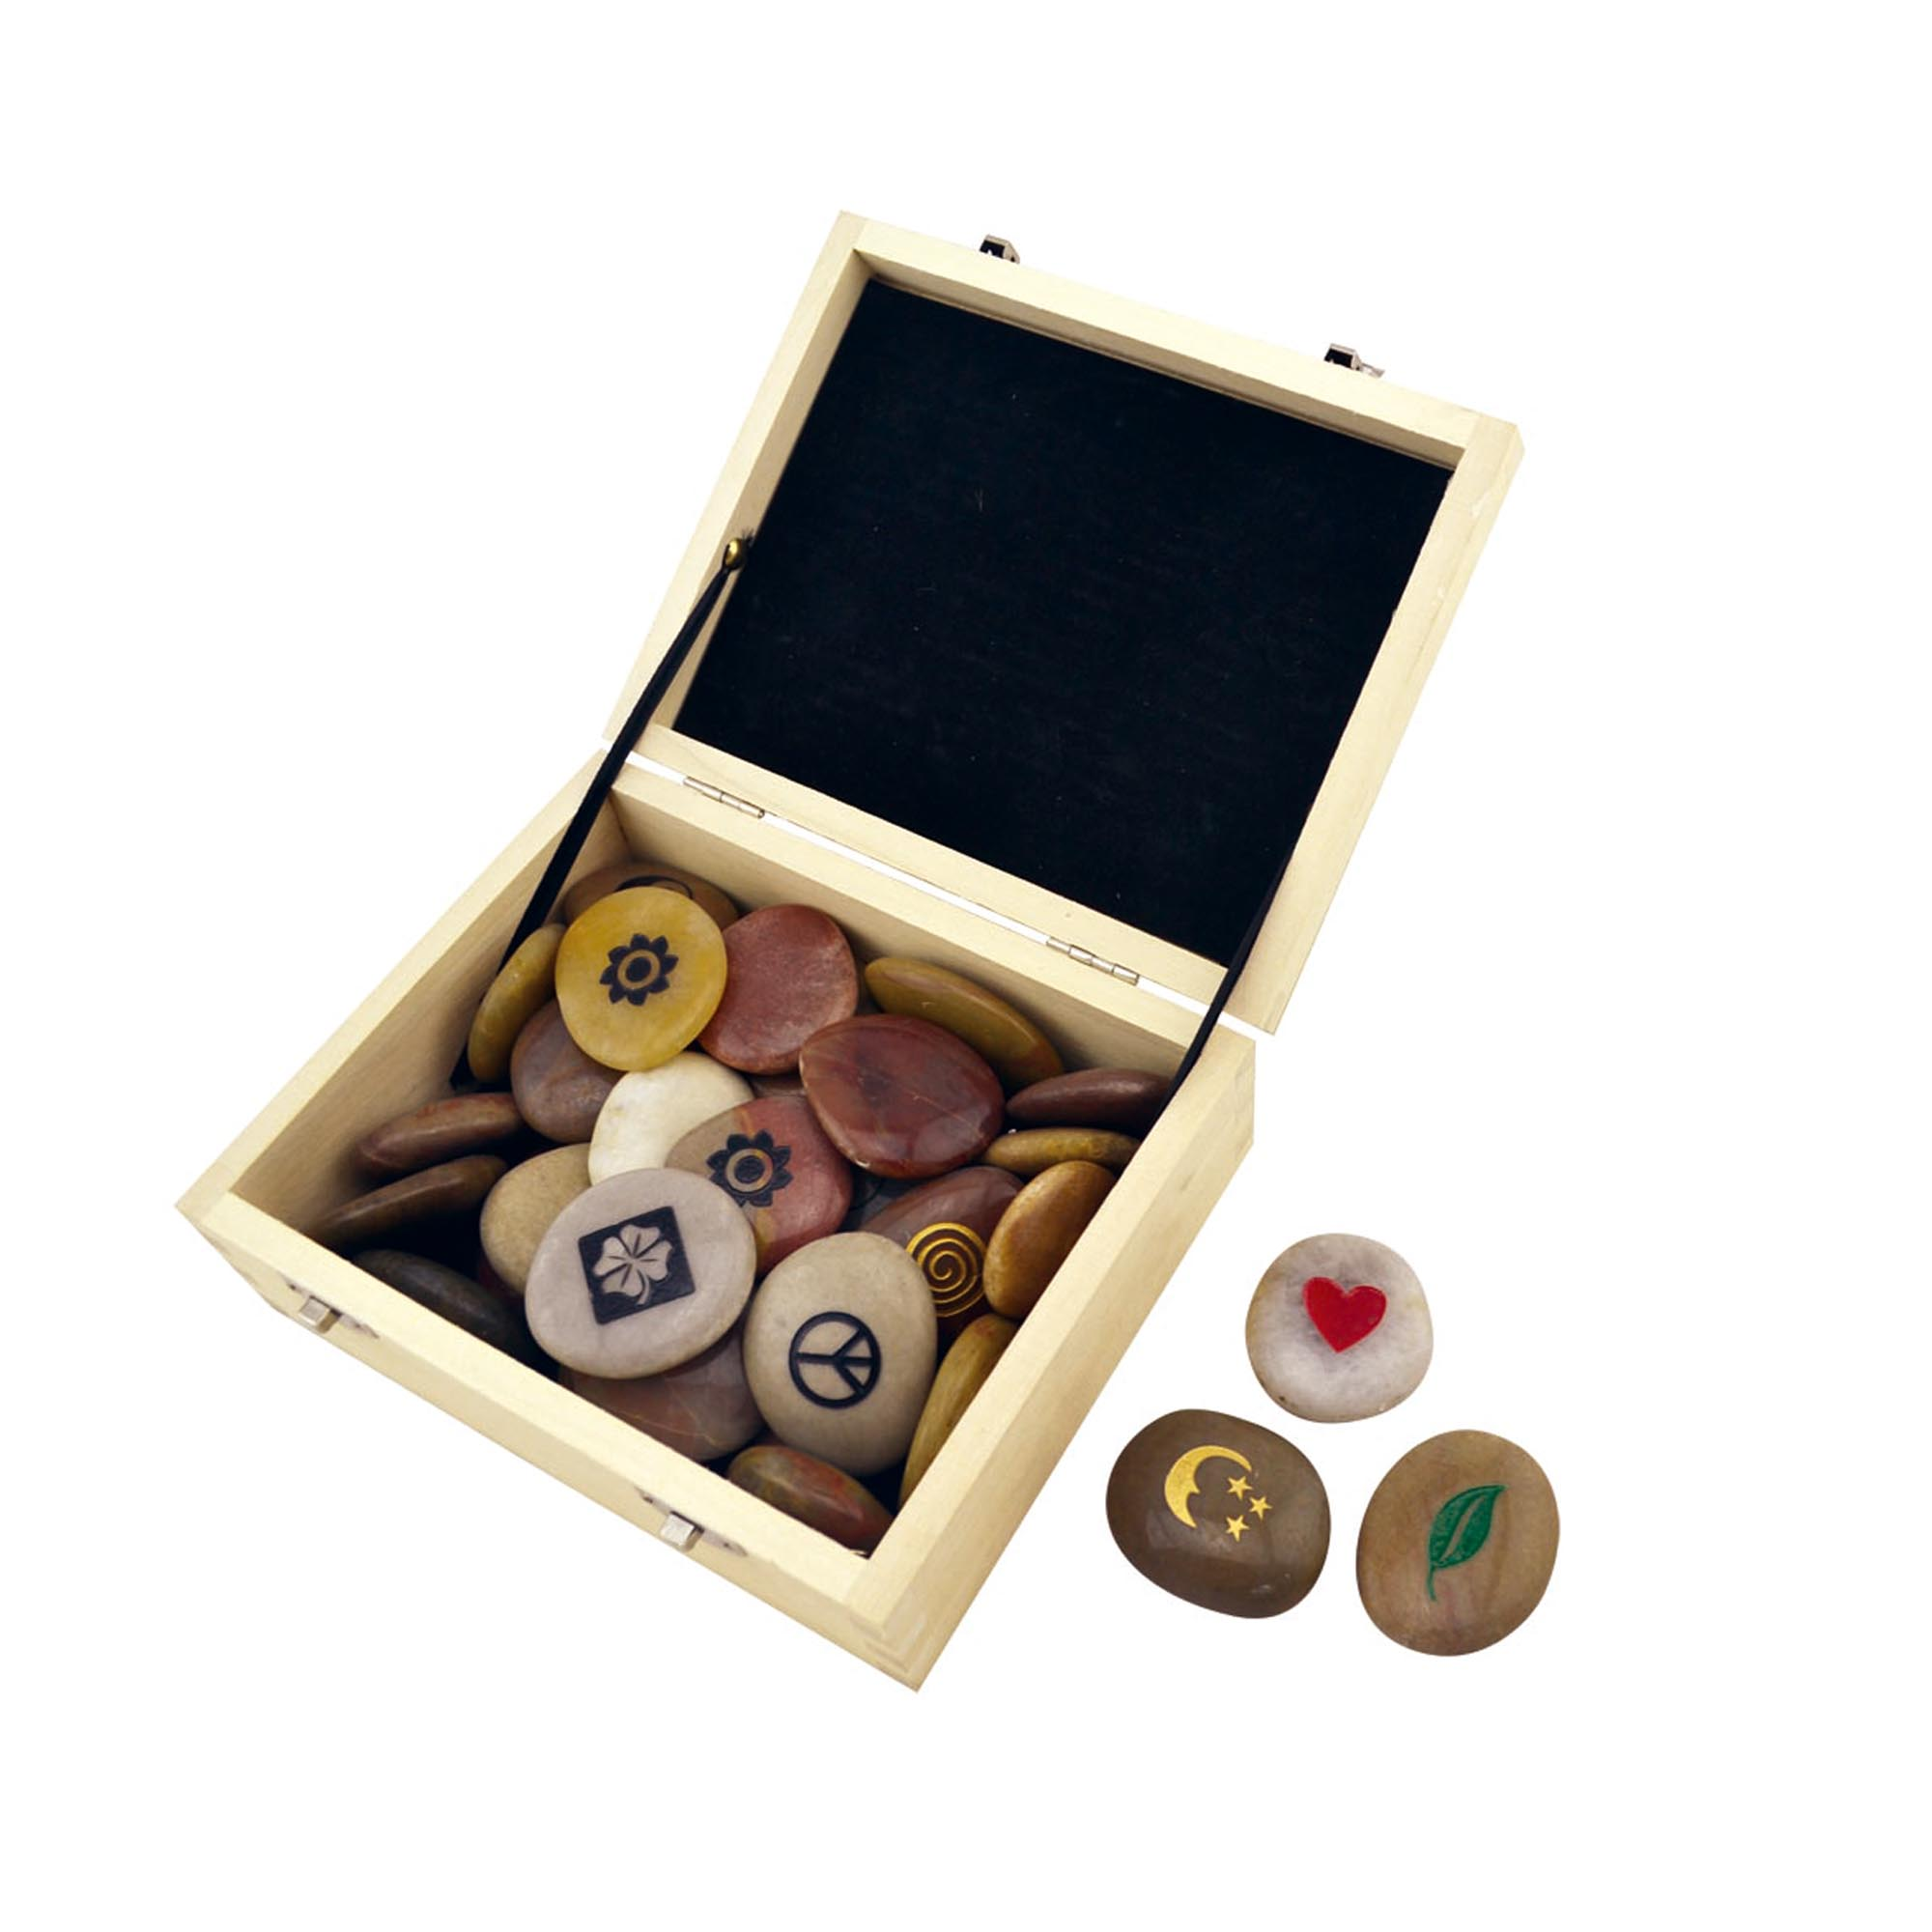 Pebble stone natural pebble with customize engravment in wooden display box